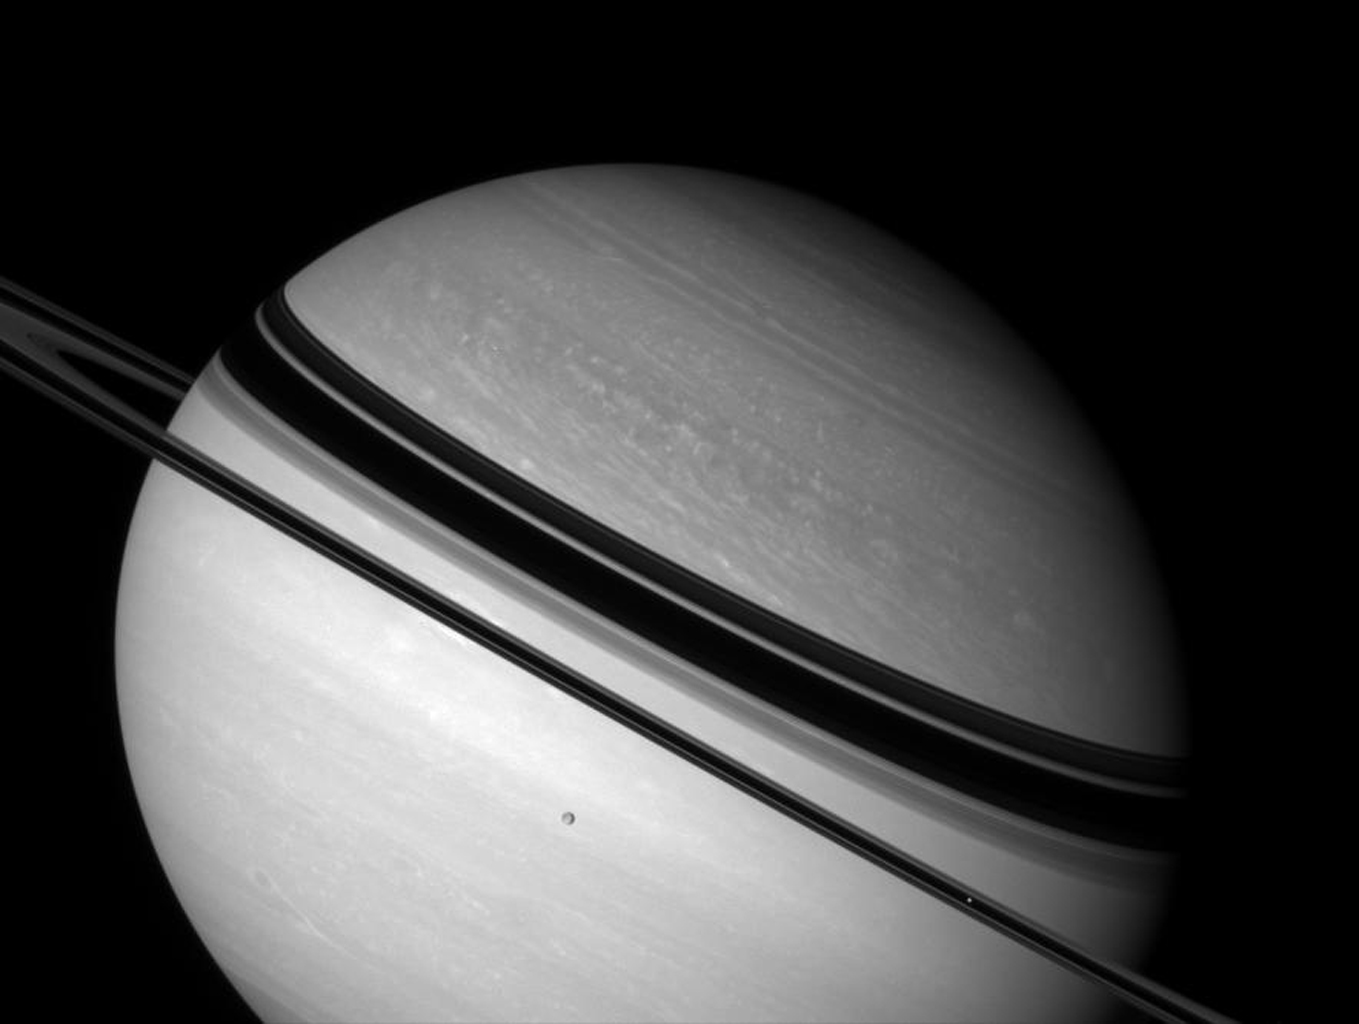 Shadow-draped Saturn rests on its side as two icy moons glide past in this image from NASA's Cassini spacecraft. Dione hangs against the planet's bright southern hemisphere. Mimas is a bright speck against the unlit side of the rings, near lower right.